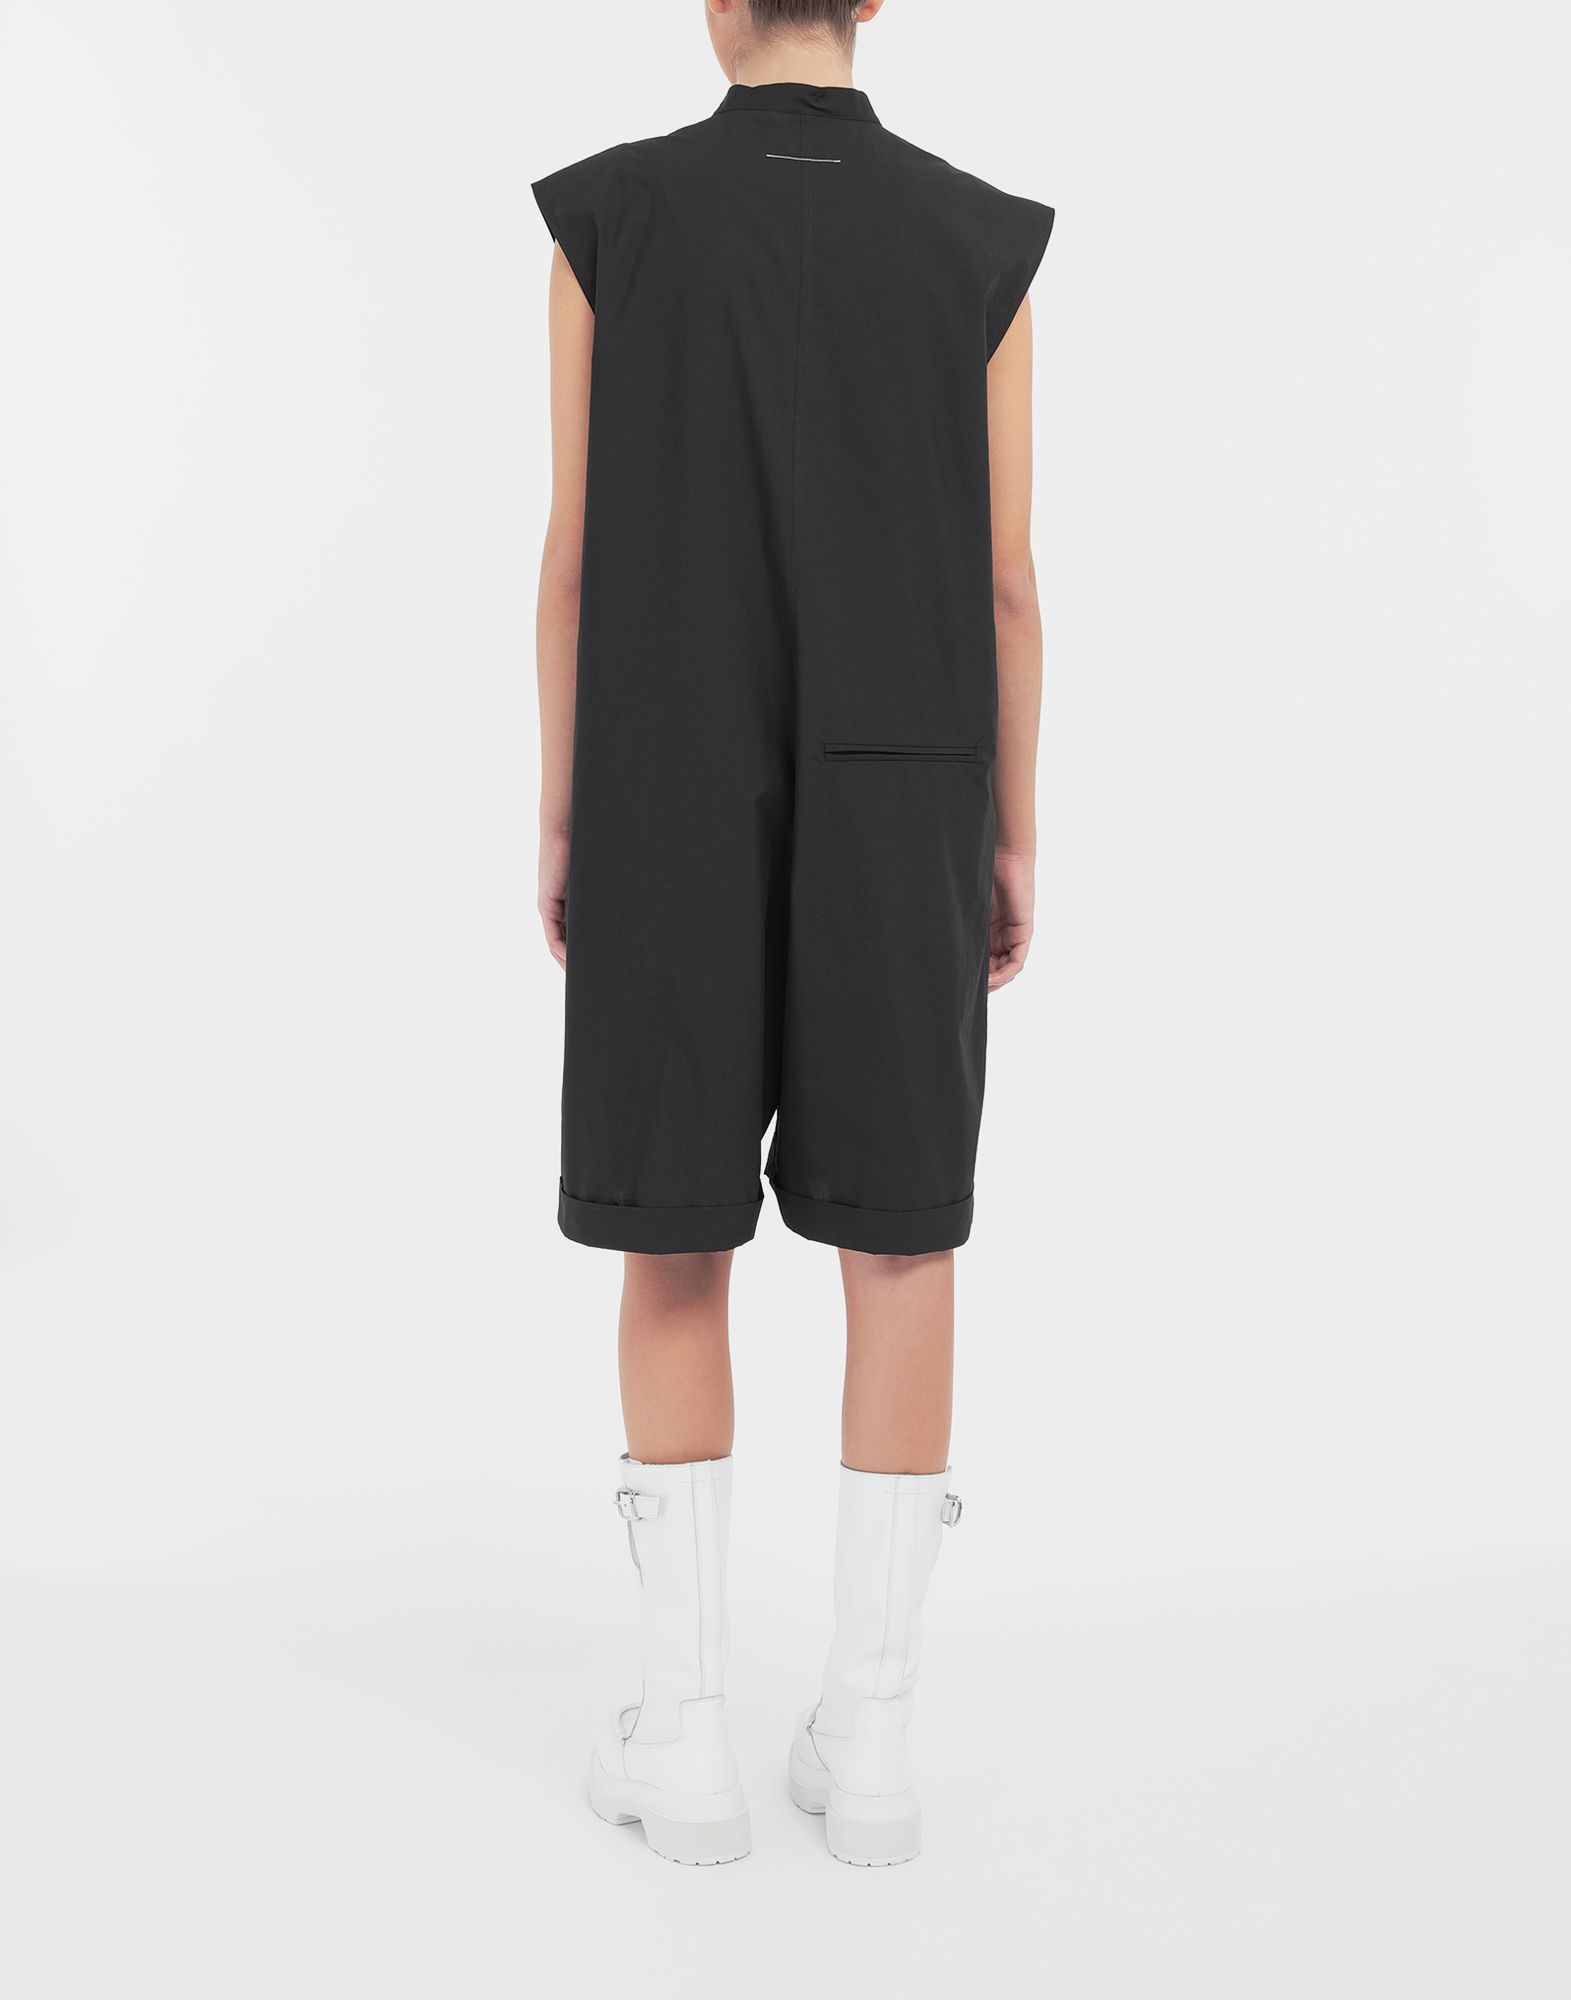 MM6 MAISON MARGIELA Casual cotton-blend playsuit Short dungaree Woman e